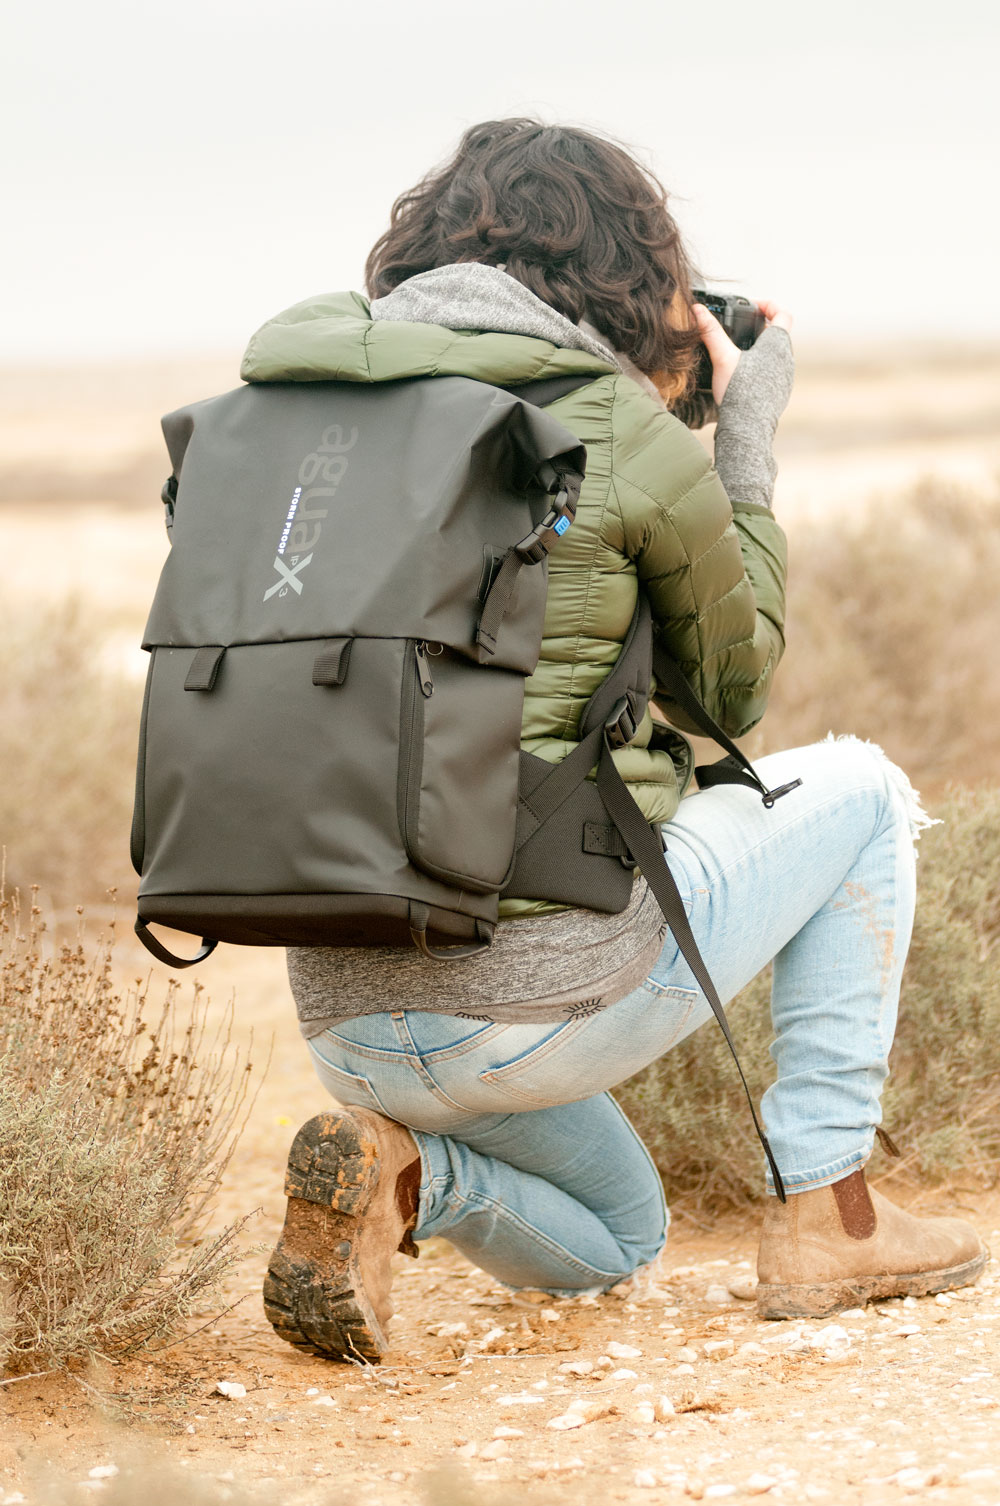 Aqua_Stormproof_Backpack_5.jpg